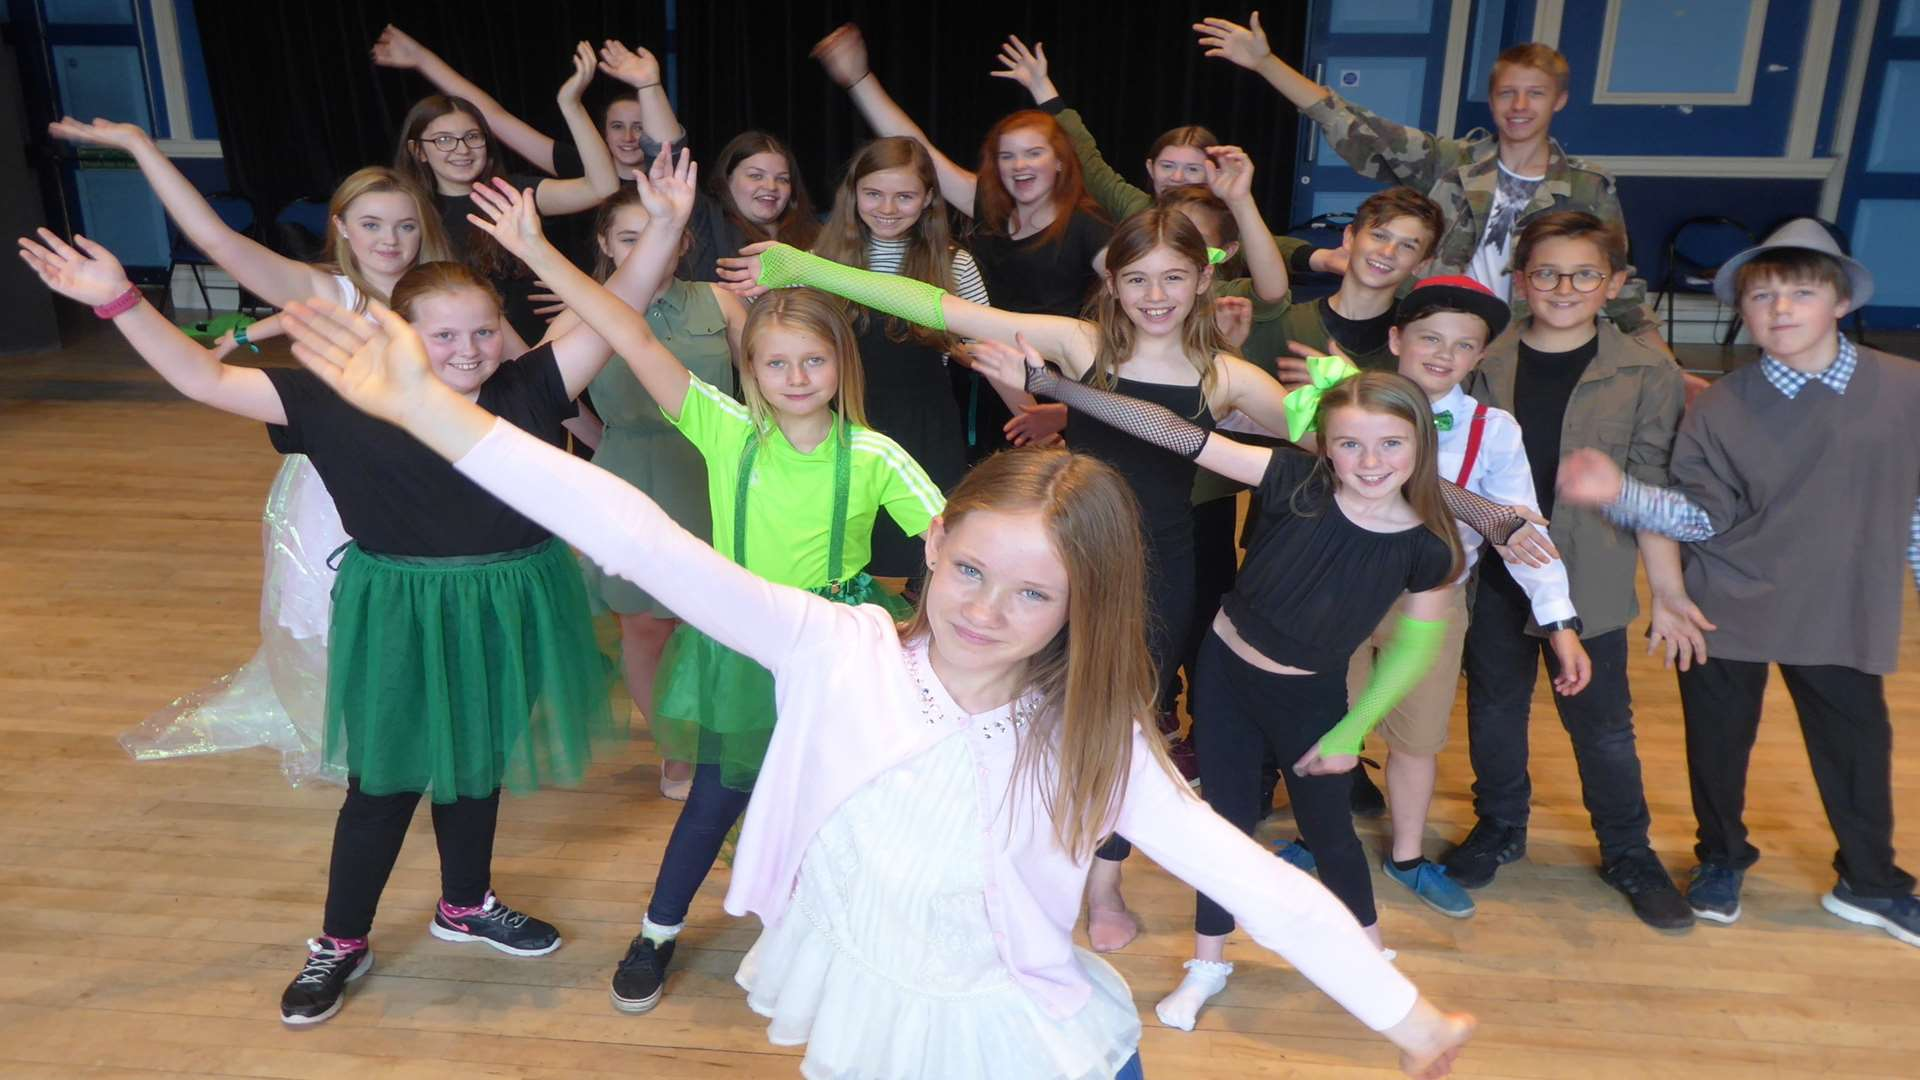 Contest winner Molly Simmonds leads the warm up for the Hazlitt Youth Theatre cast of Wicked.